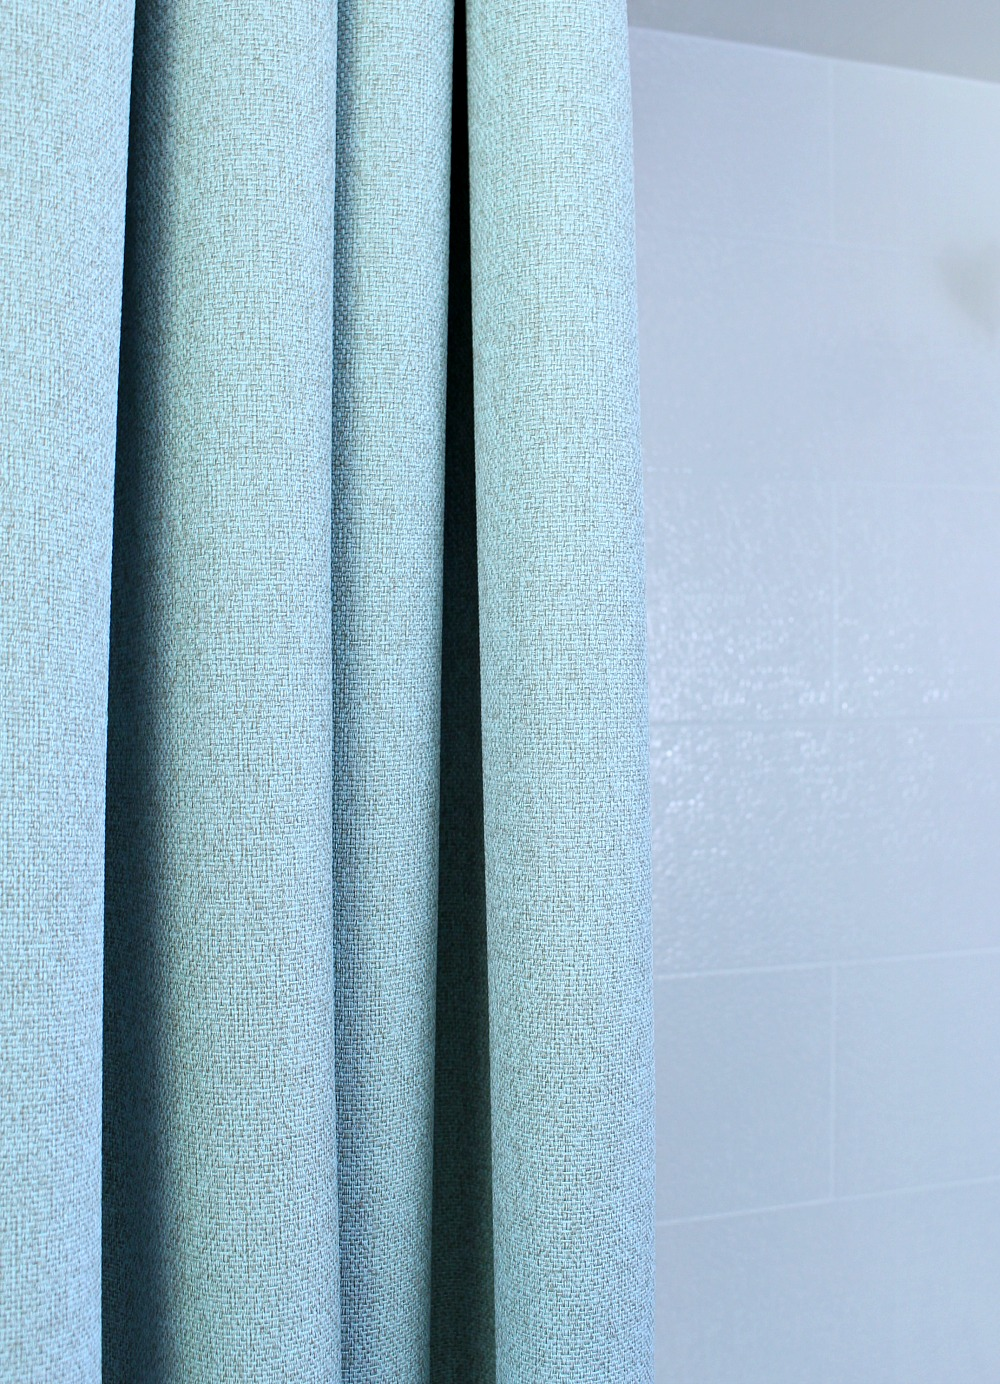 Ceiling Mounted Shower Curtain Rod + Turquoise Tweed Pleated Shower Curtain  In Modern Bathroom Reno |